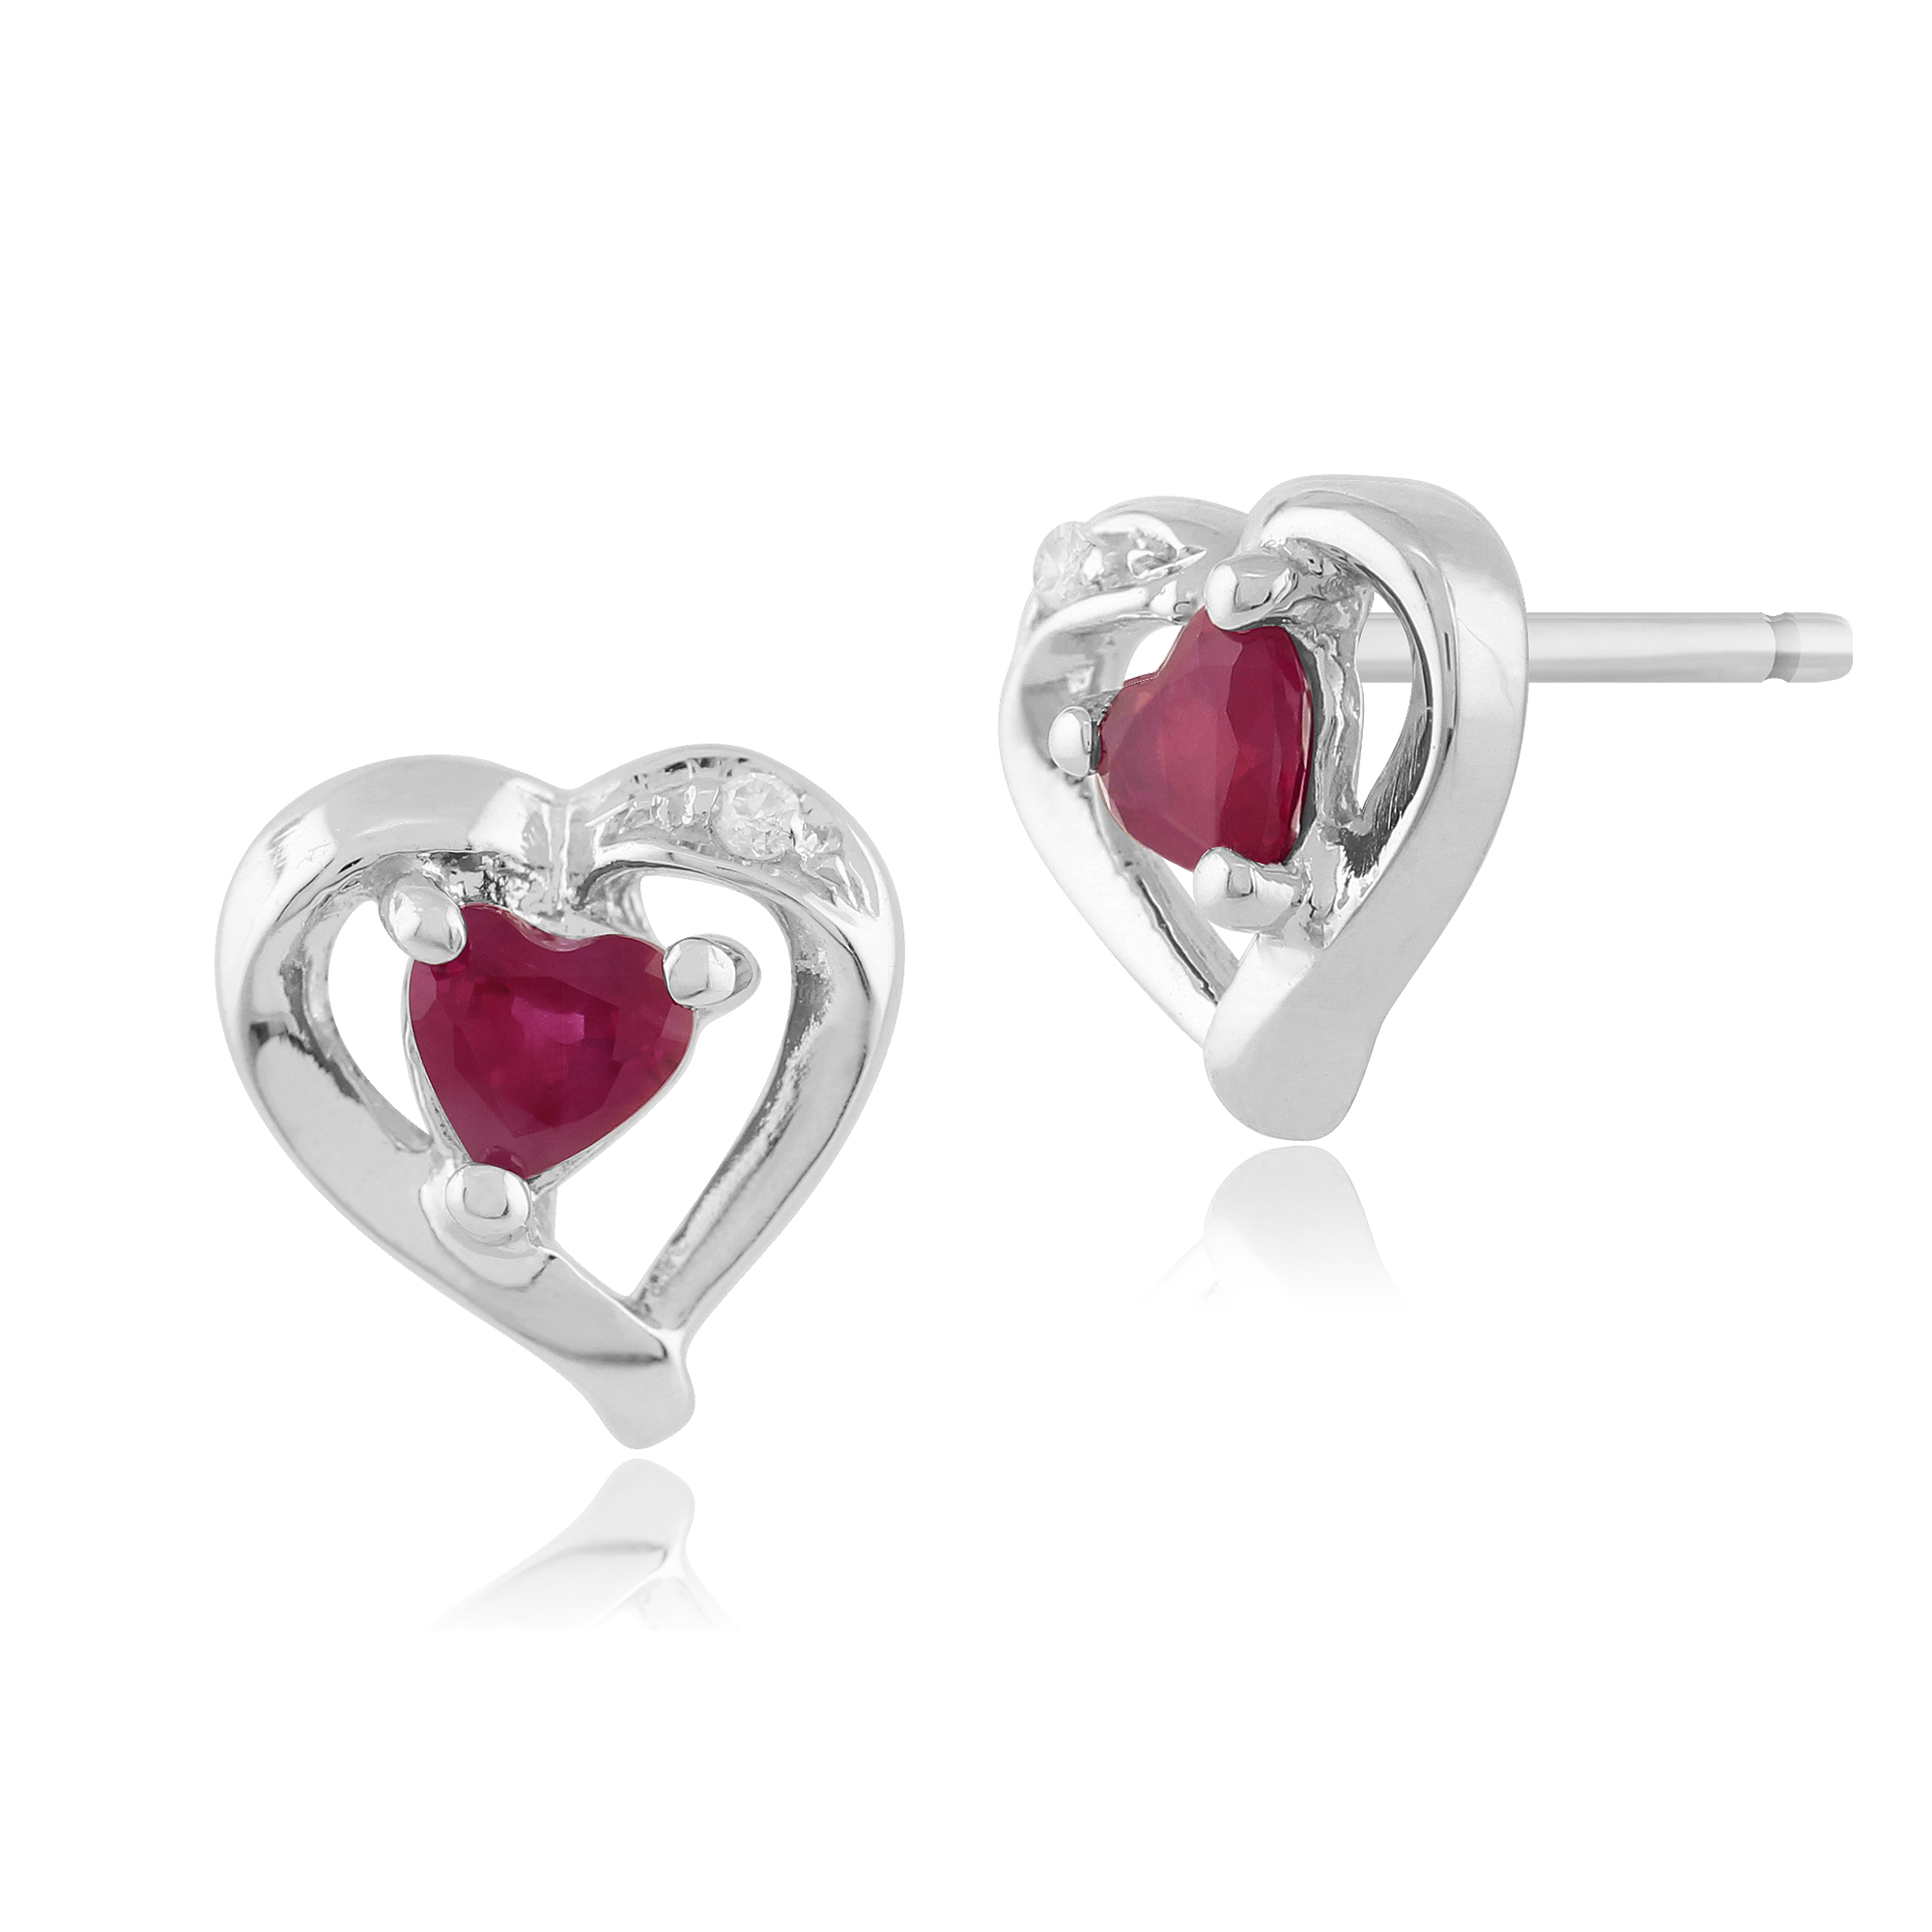 Gemondo 9ct White Gold 0.25ct Genuine Ruby & Diamond Heart Stud Earrings